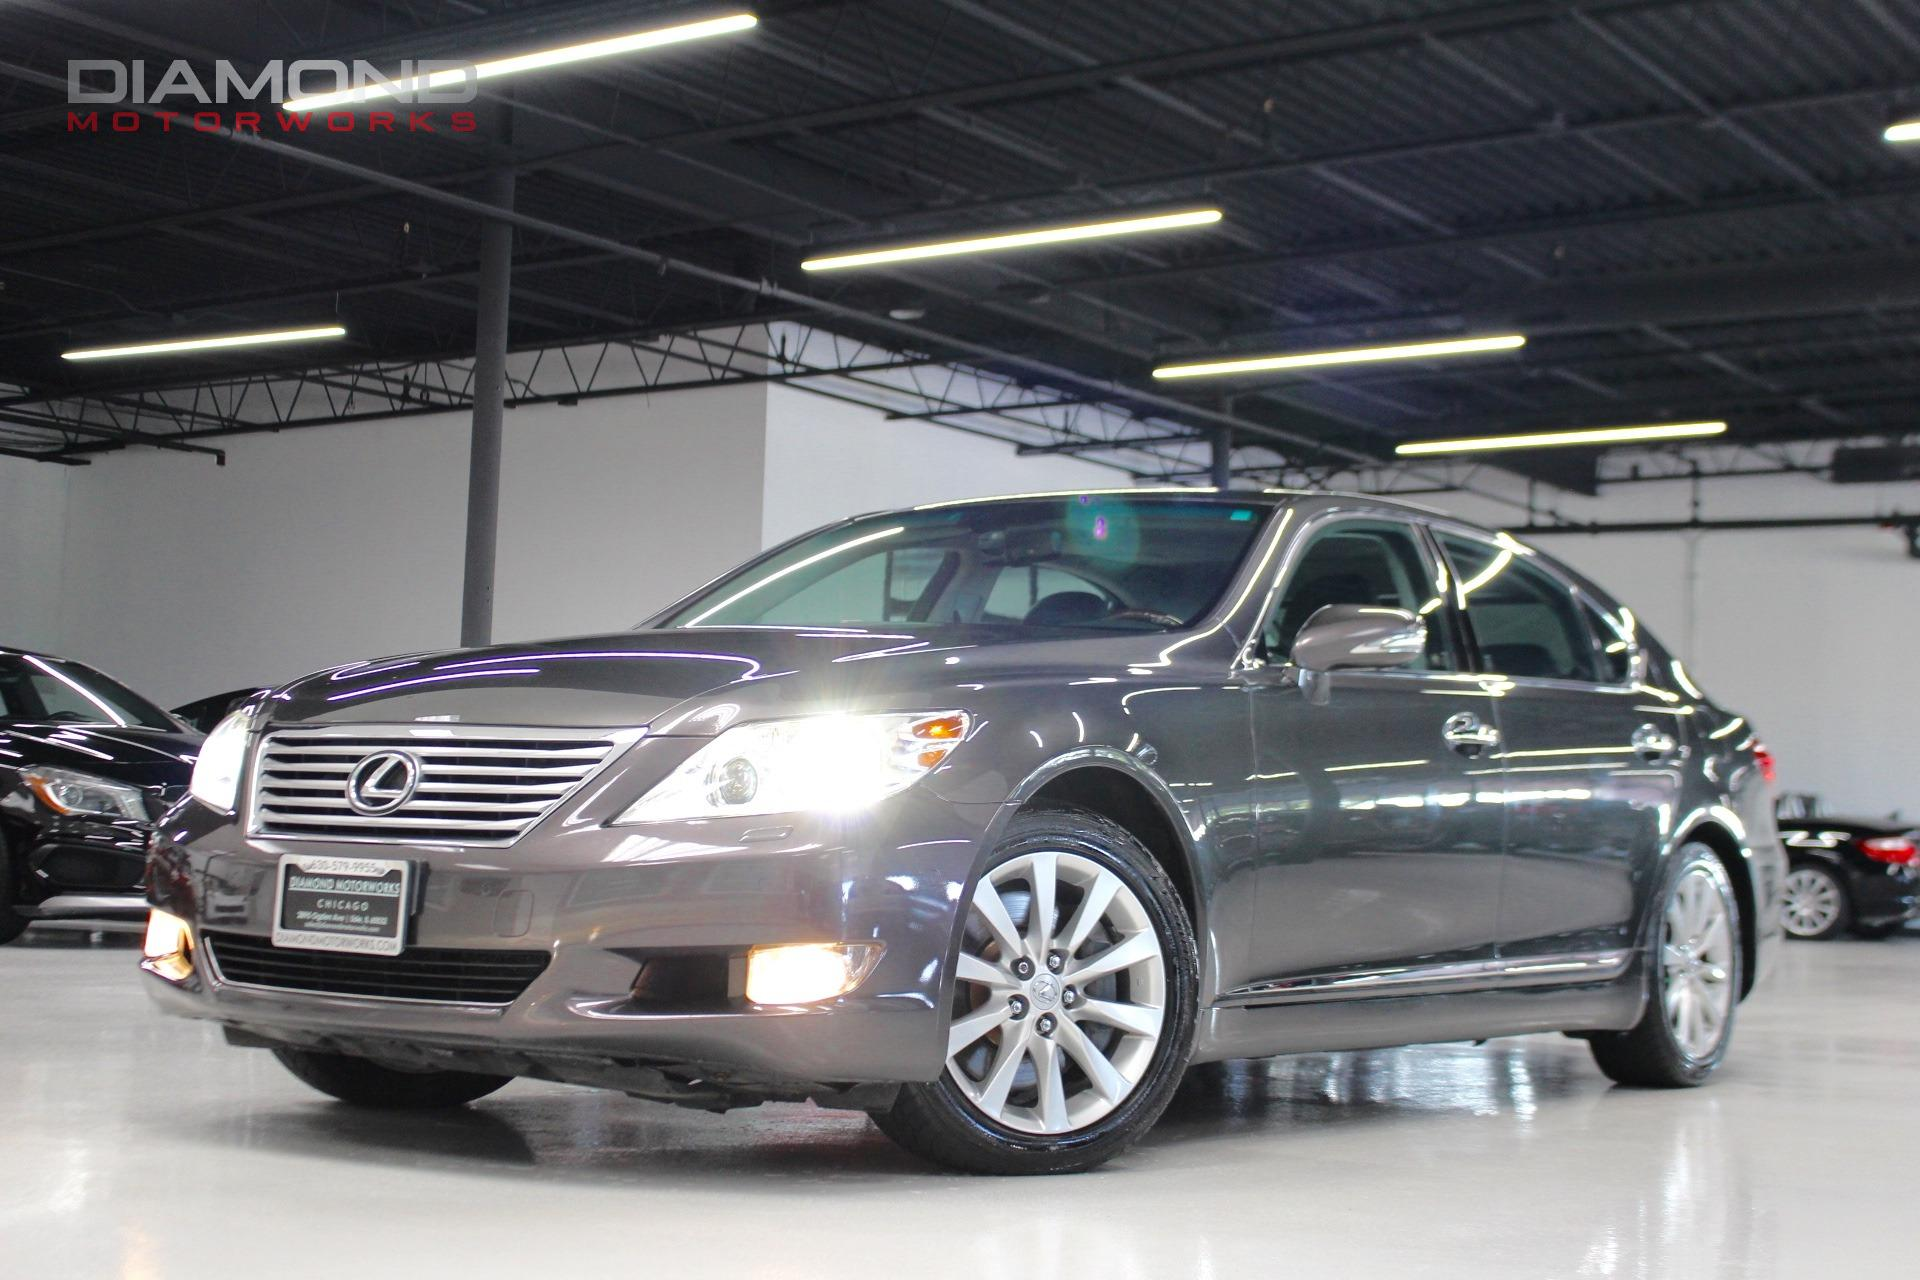 Used Car Dealer Near Me >> Used 2010 Lexus LS 460 L | Lisle, IL